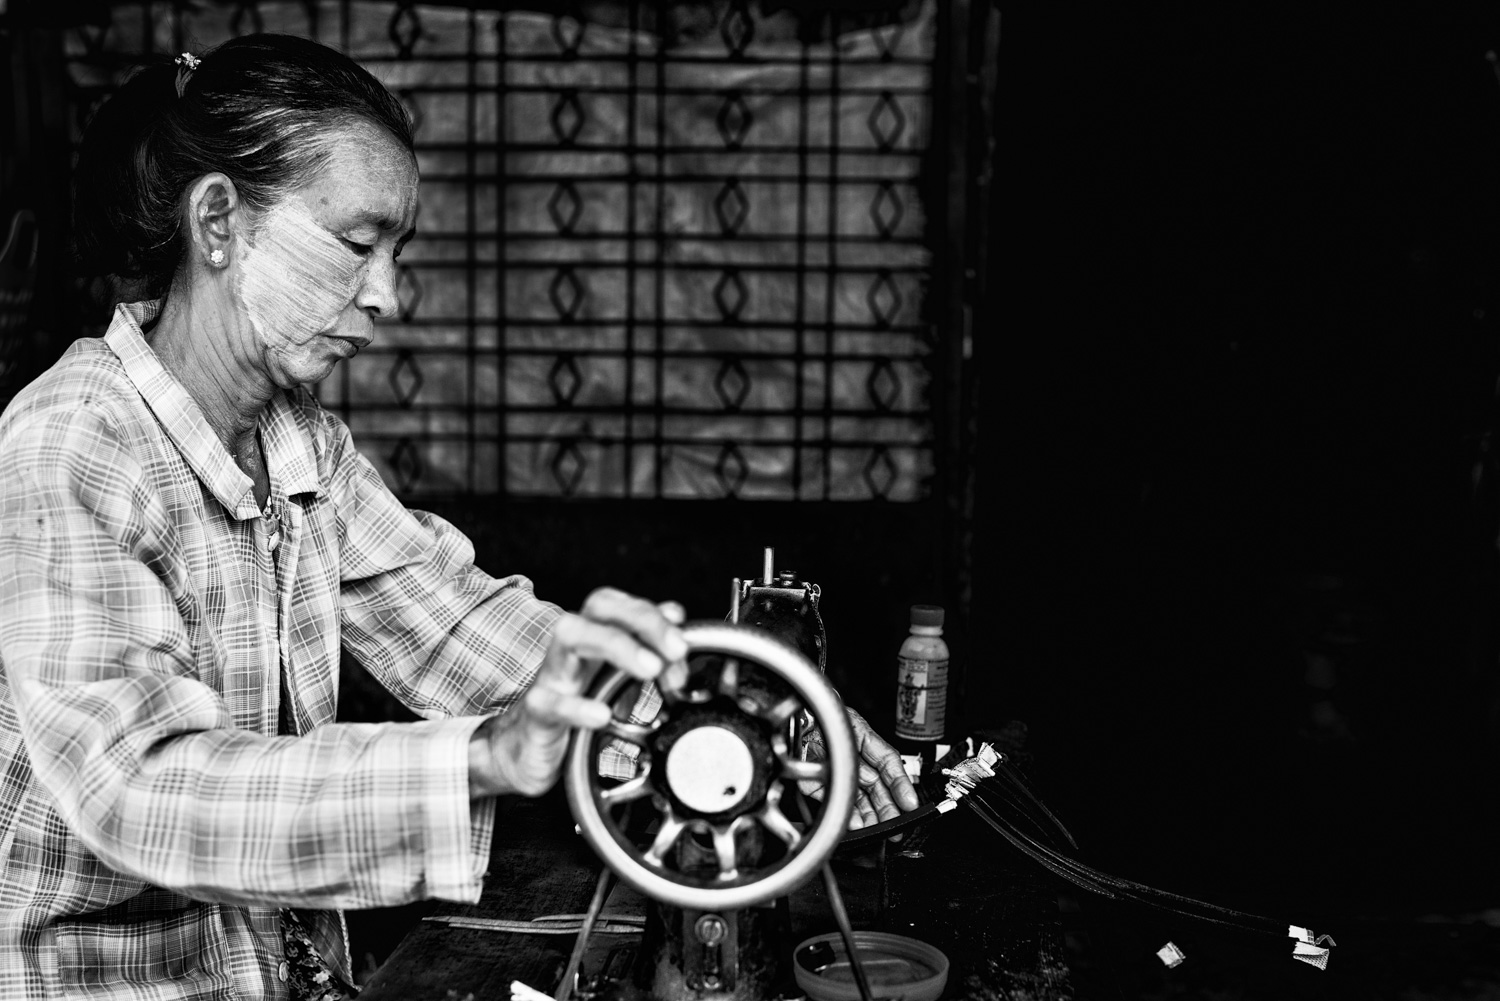 Woman sewing with an old machine